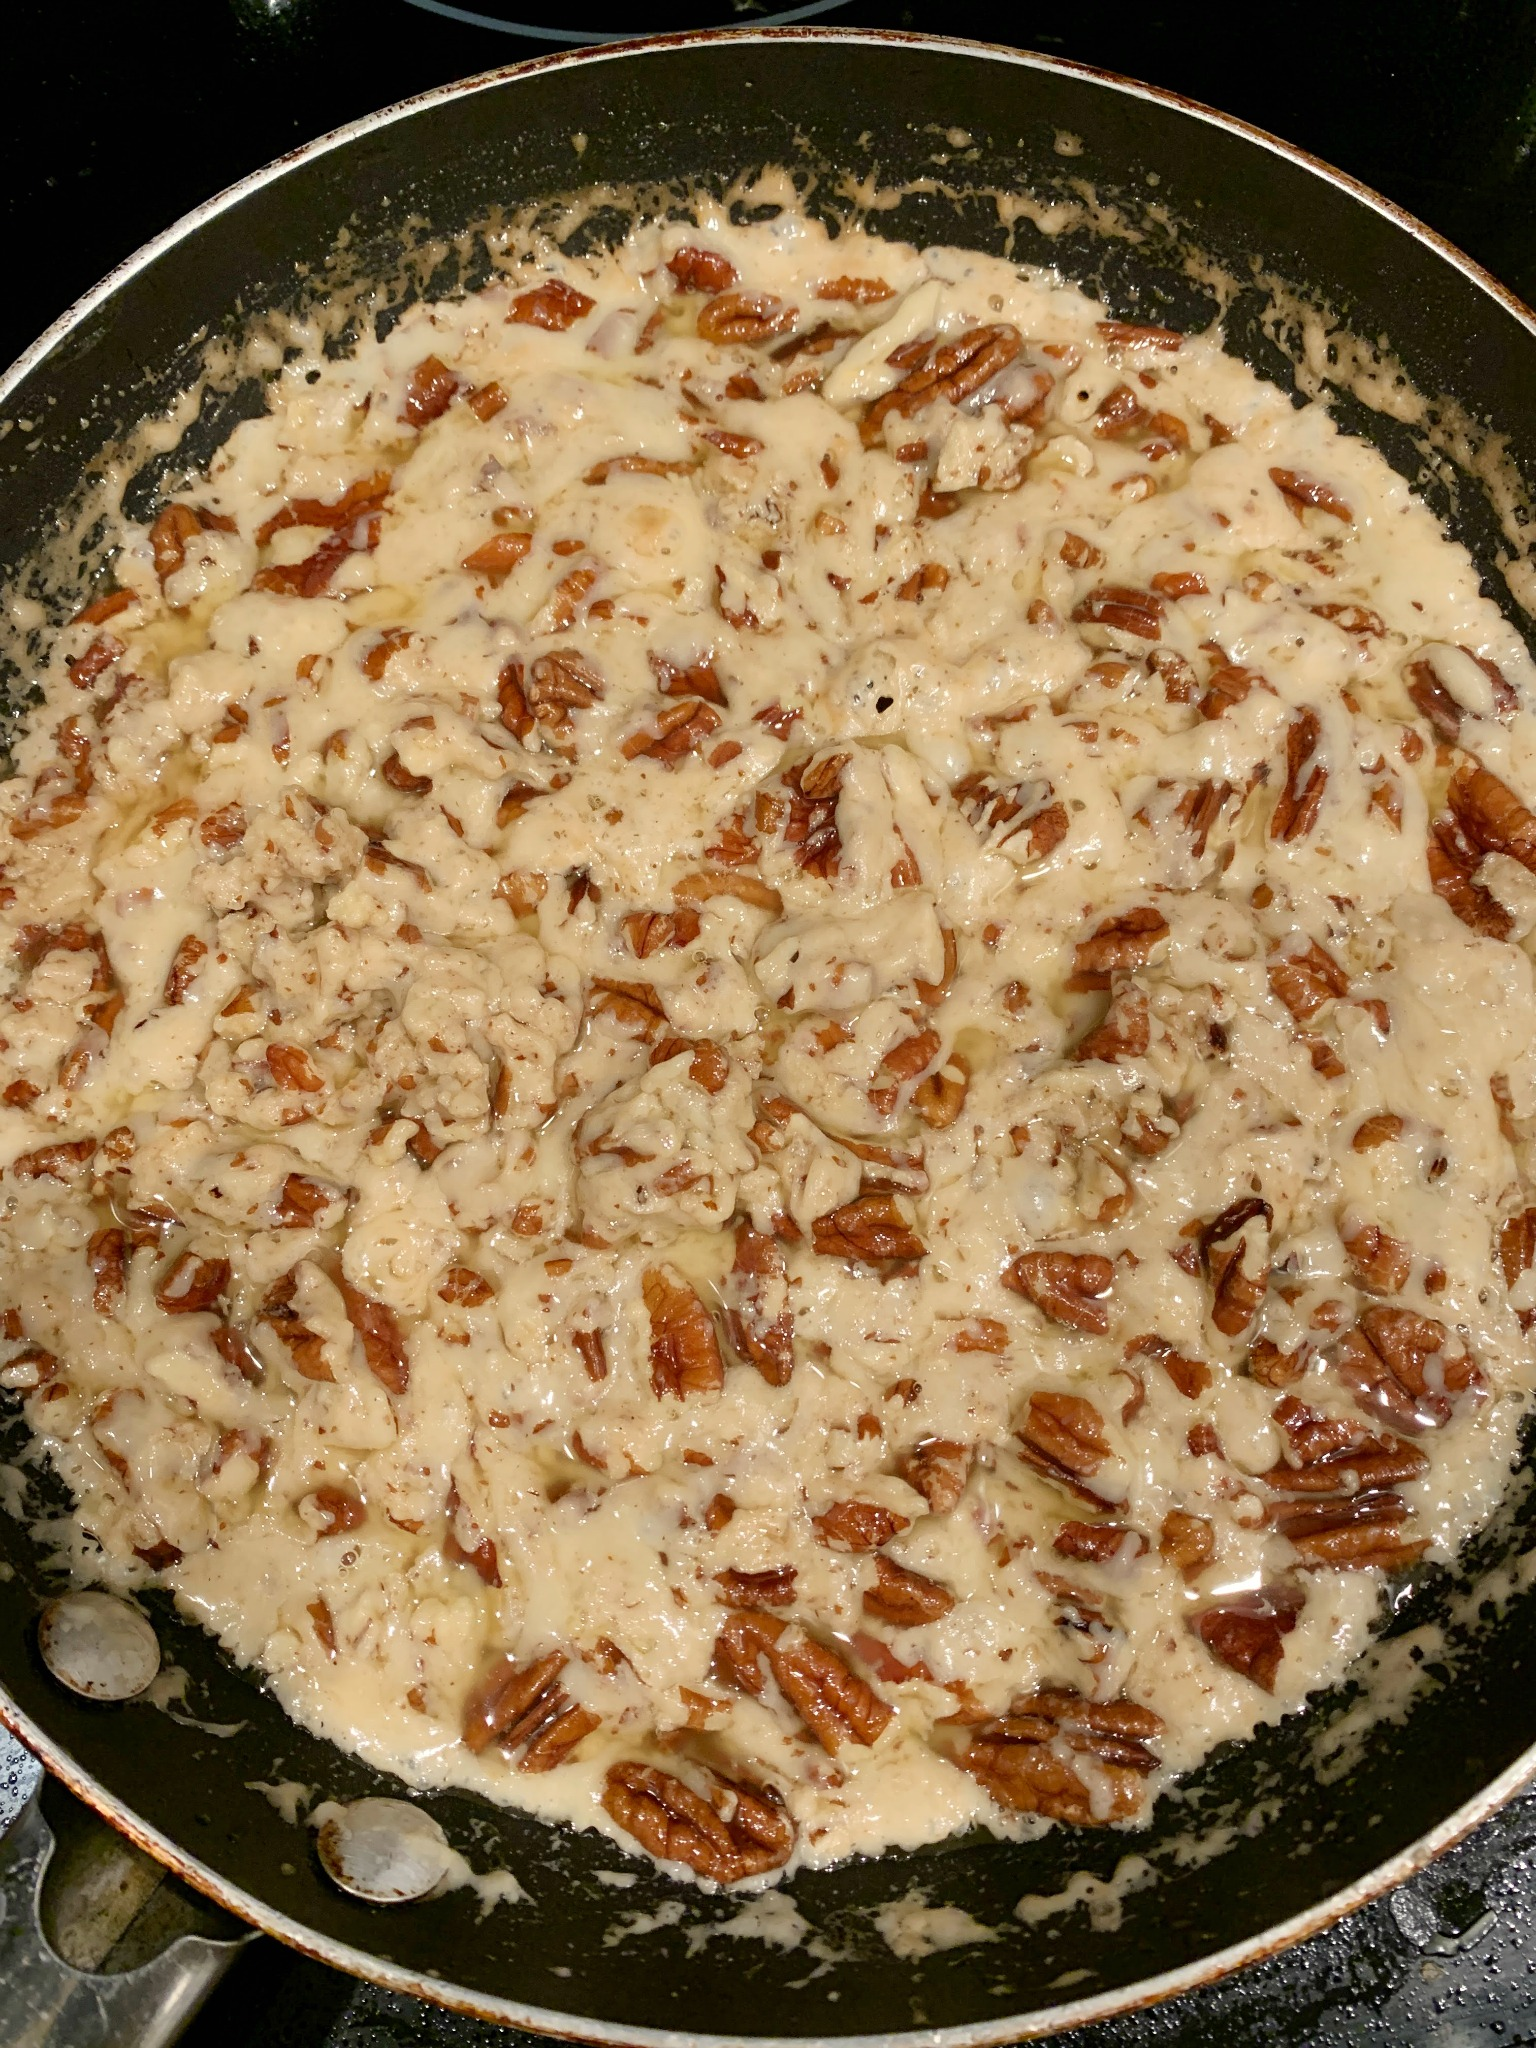 skillet with caramalized sugar and chopped pecans